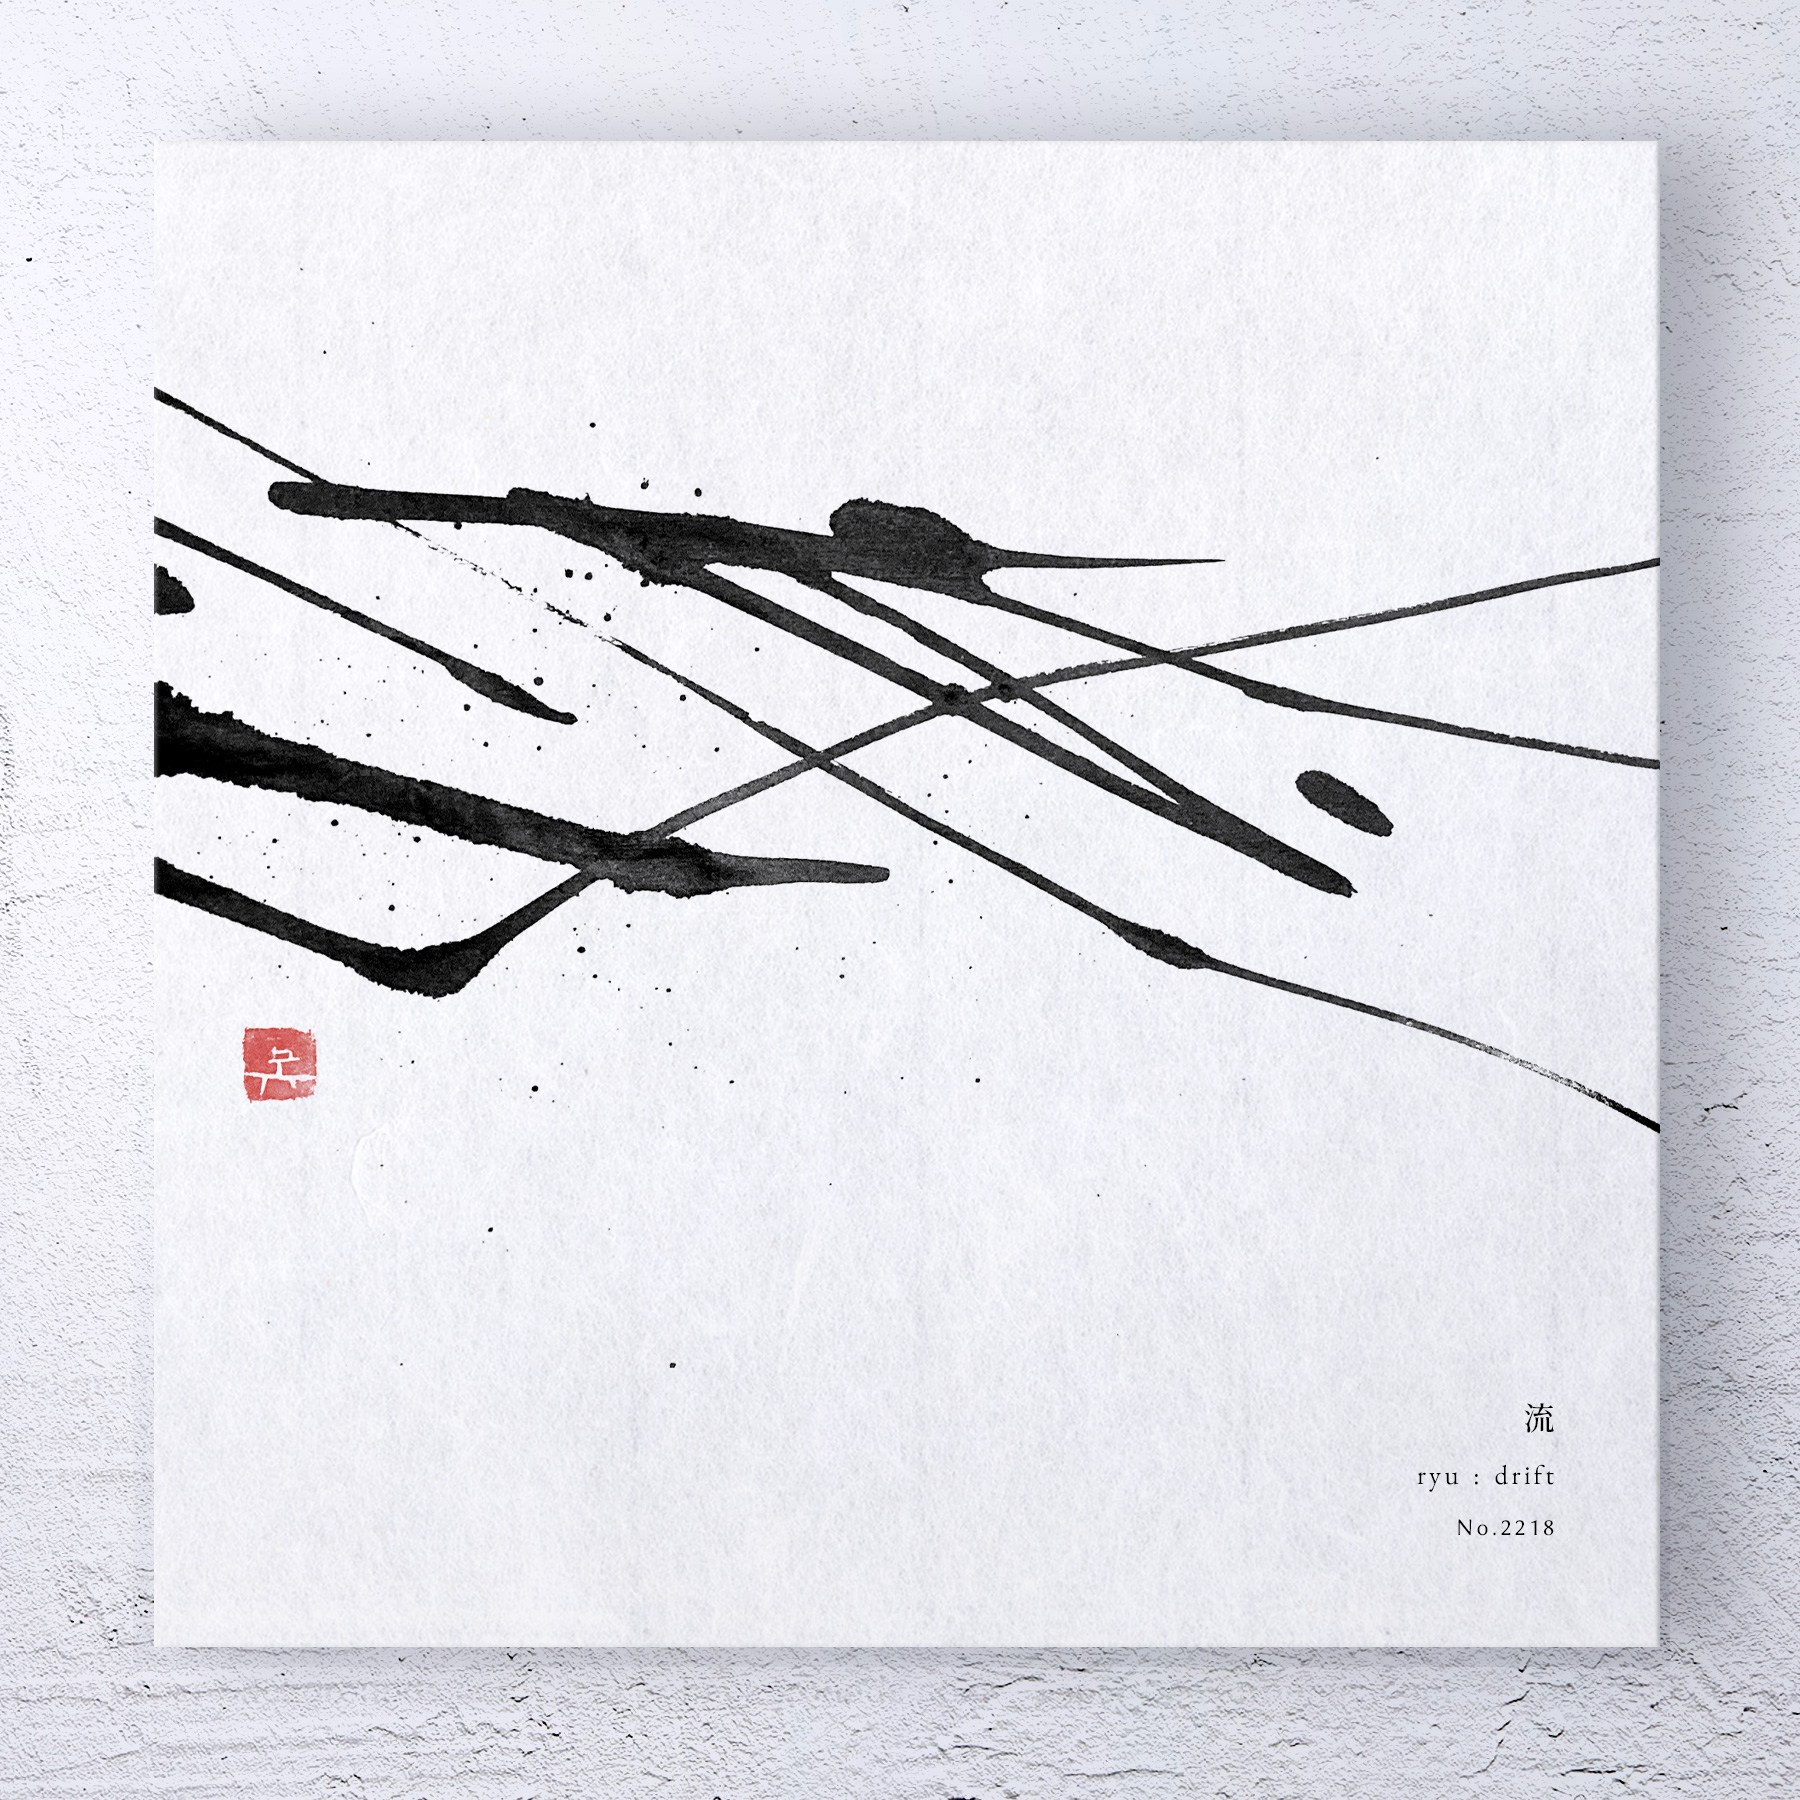 流 | drift 書道作品 japaneseart japanese calligraphy 書家 田川悟郎 Goroh Tagawa